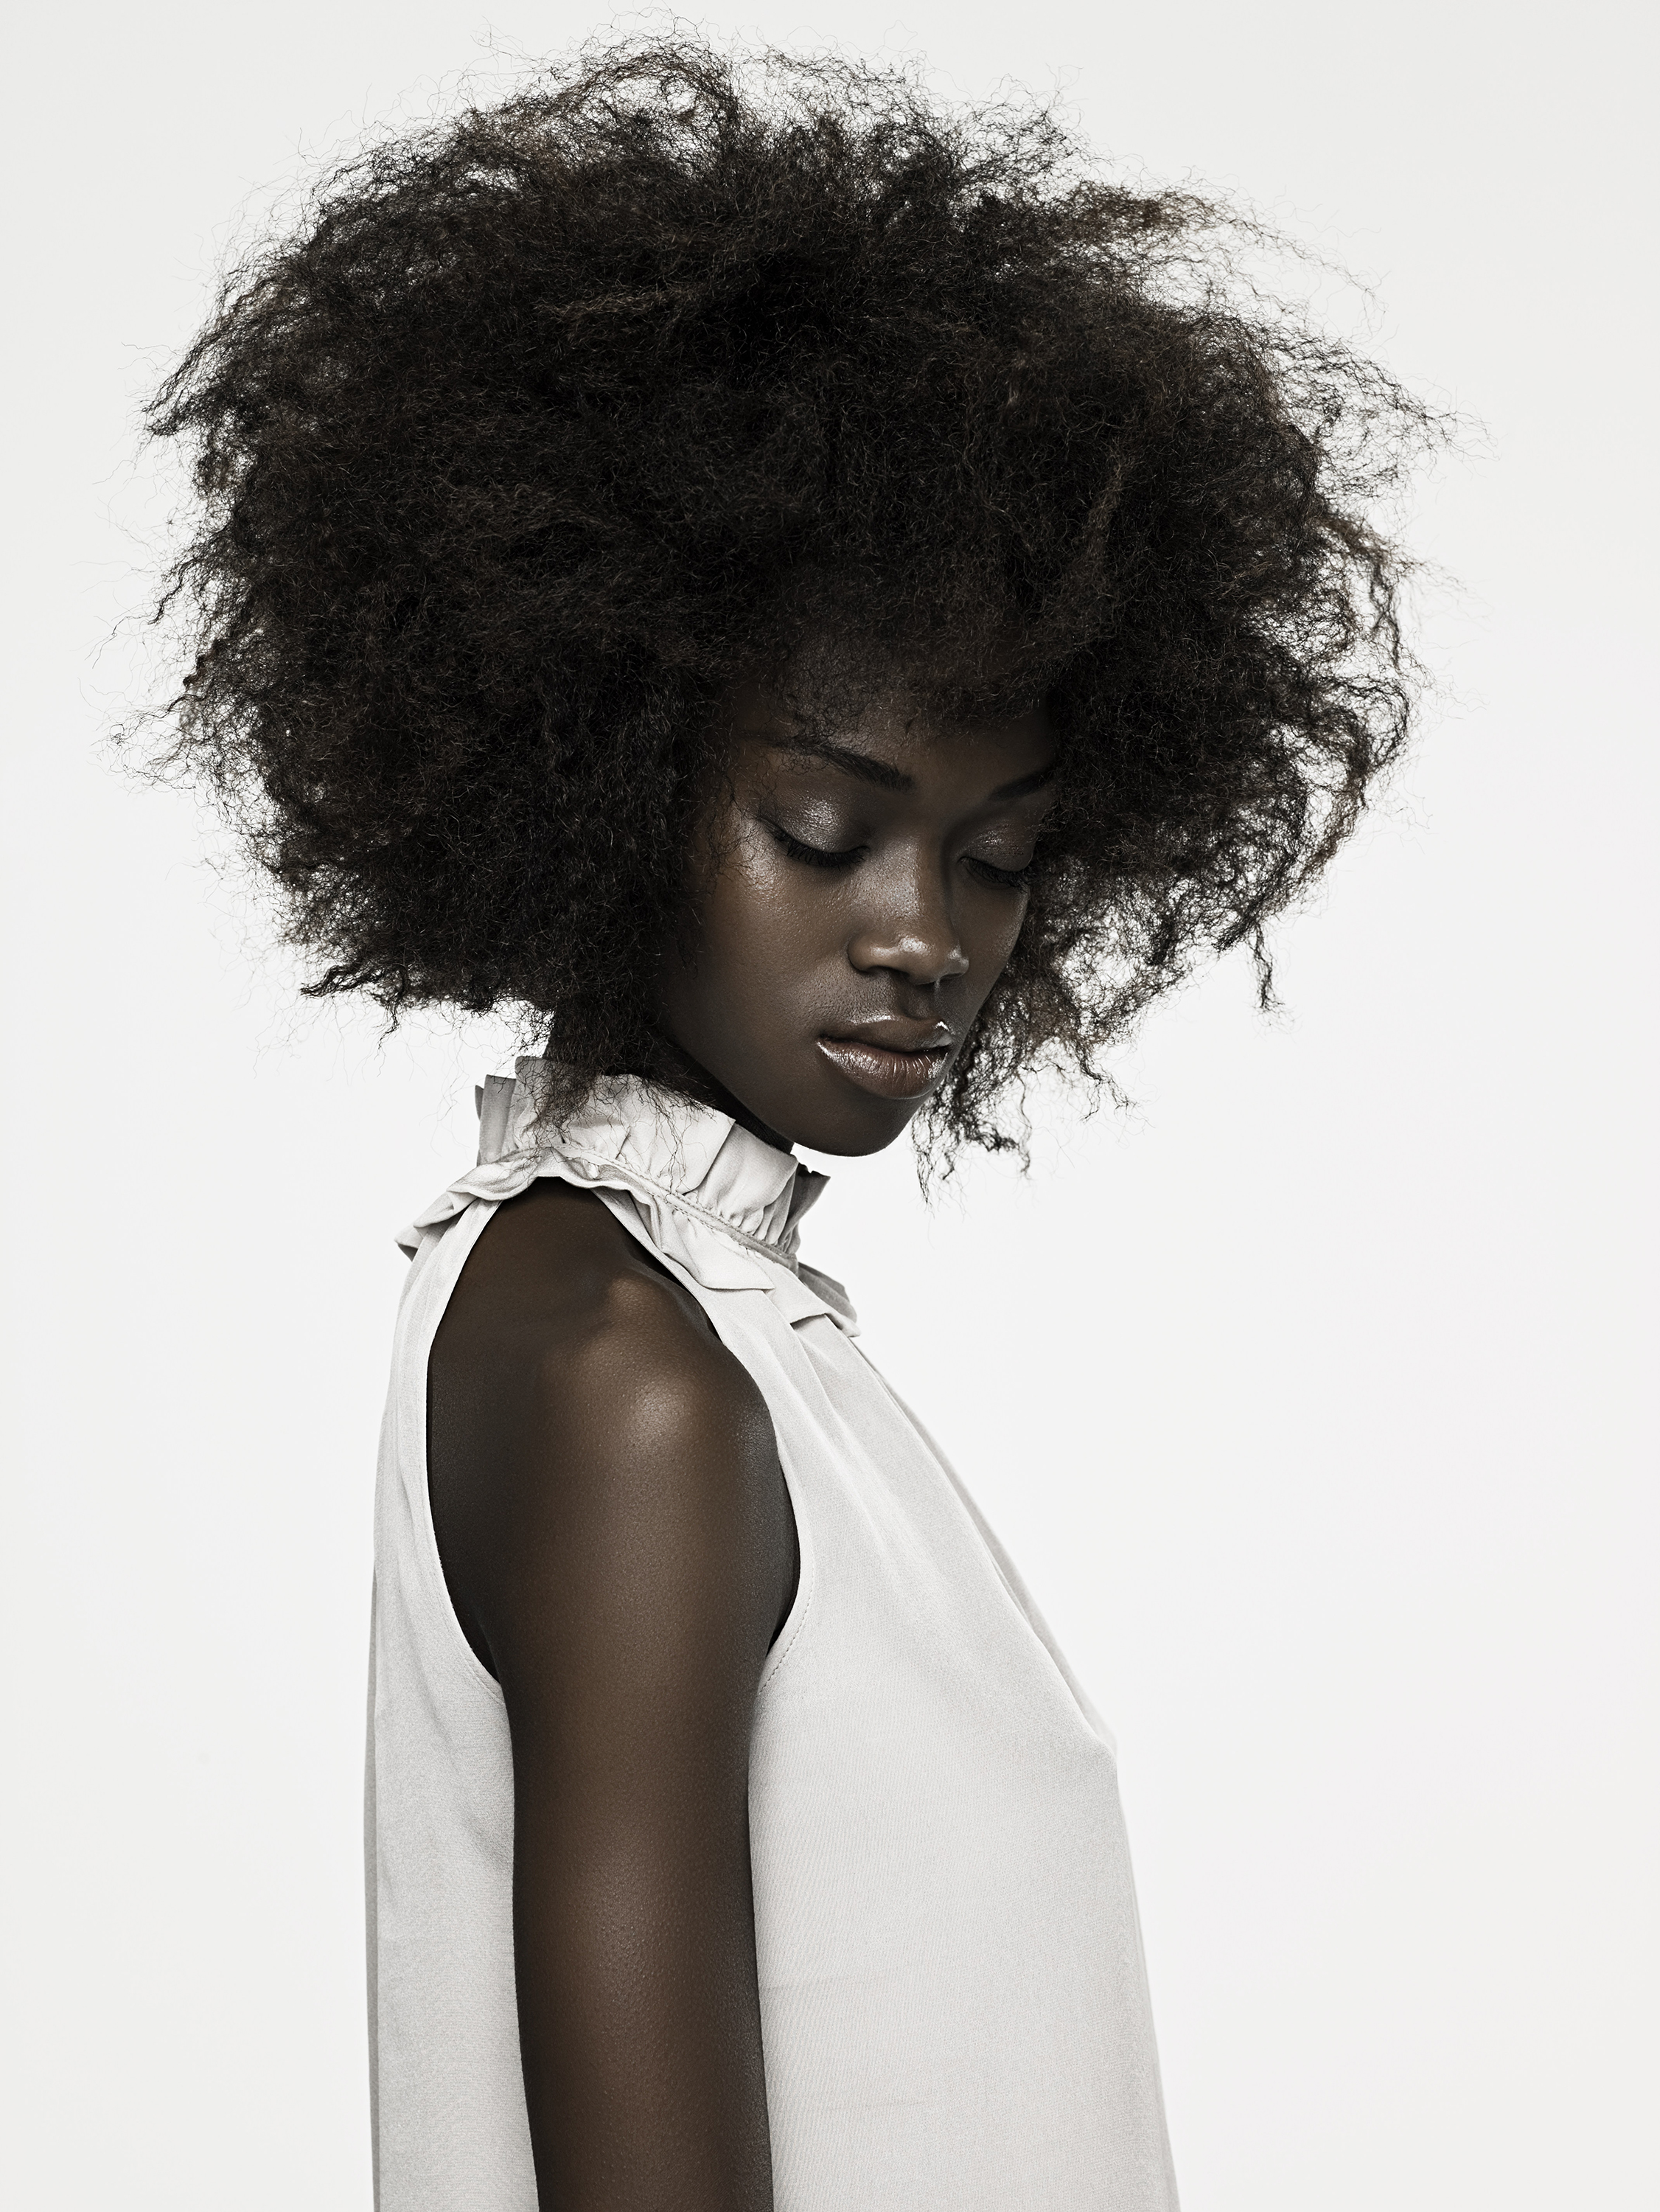 Young Black Woman with Kinky Hair